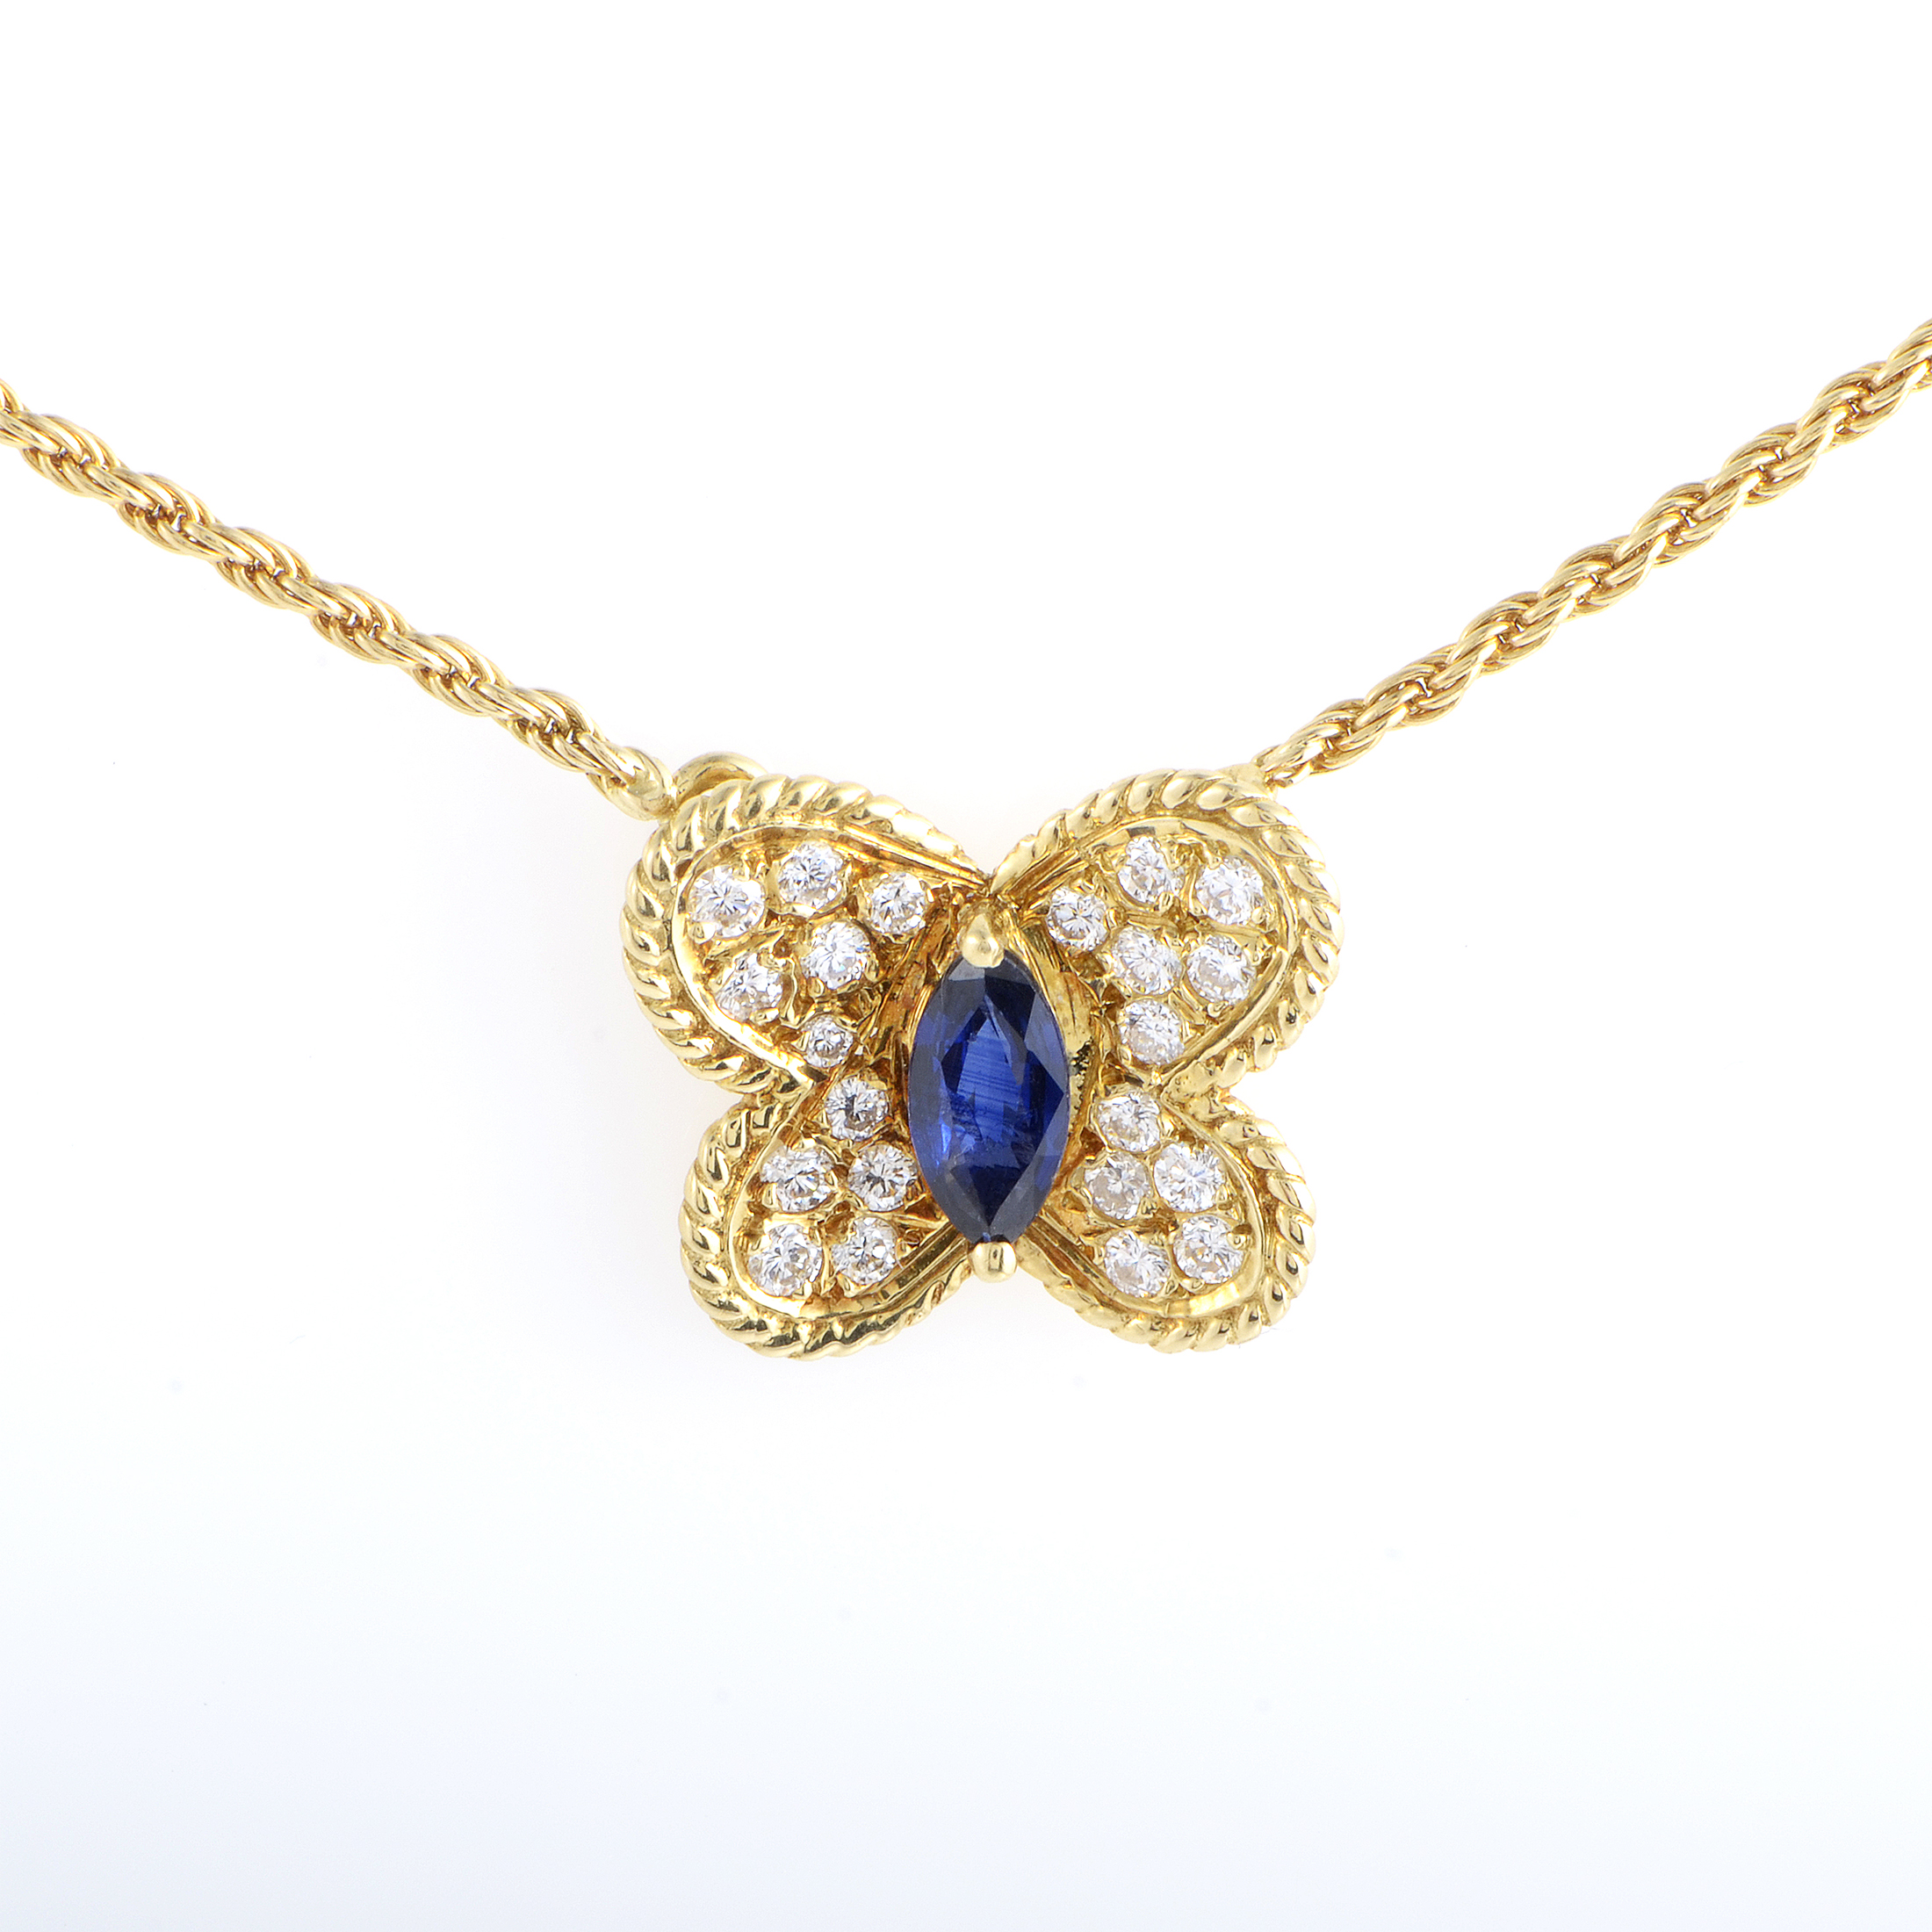 Graff Women's 18K Yellow Gold Diamond & Sapphire Butterfly Pendant Necklace